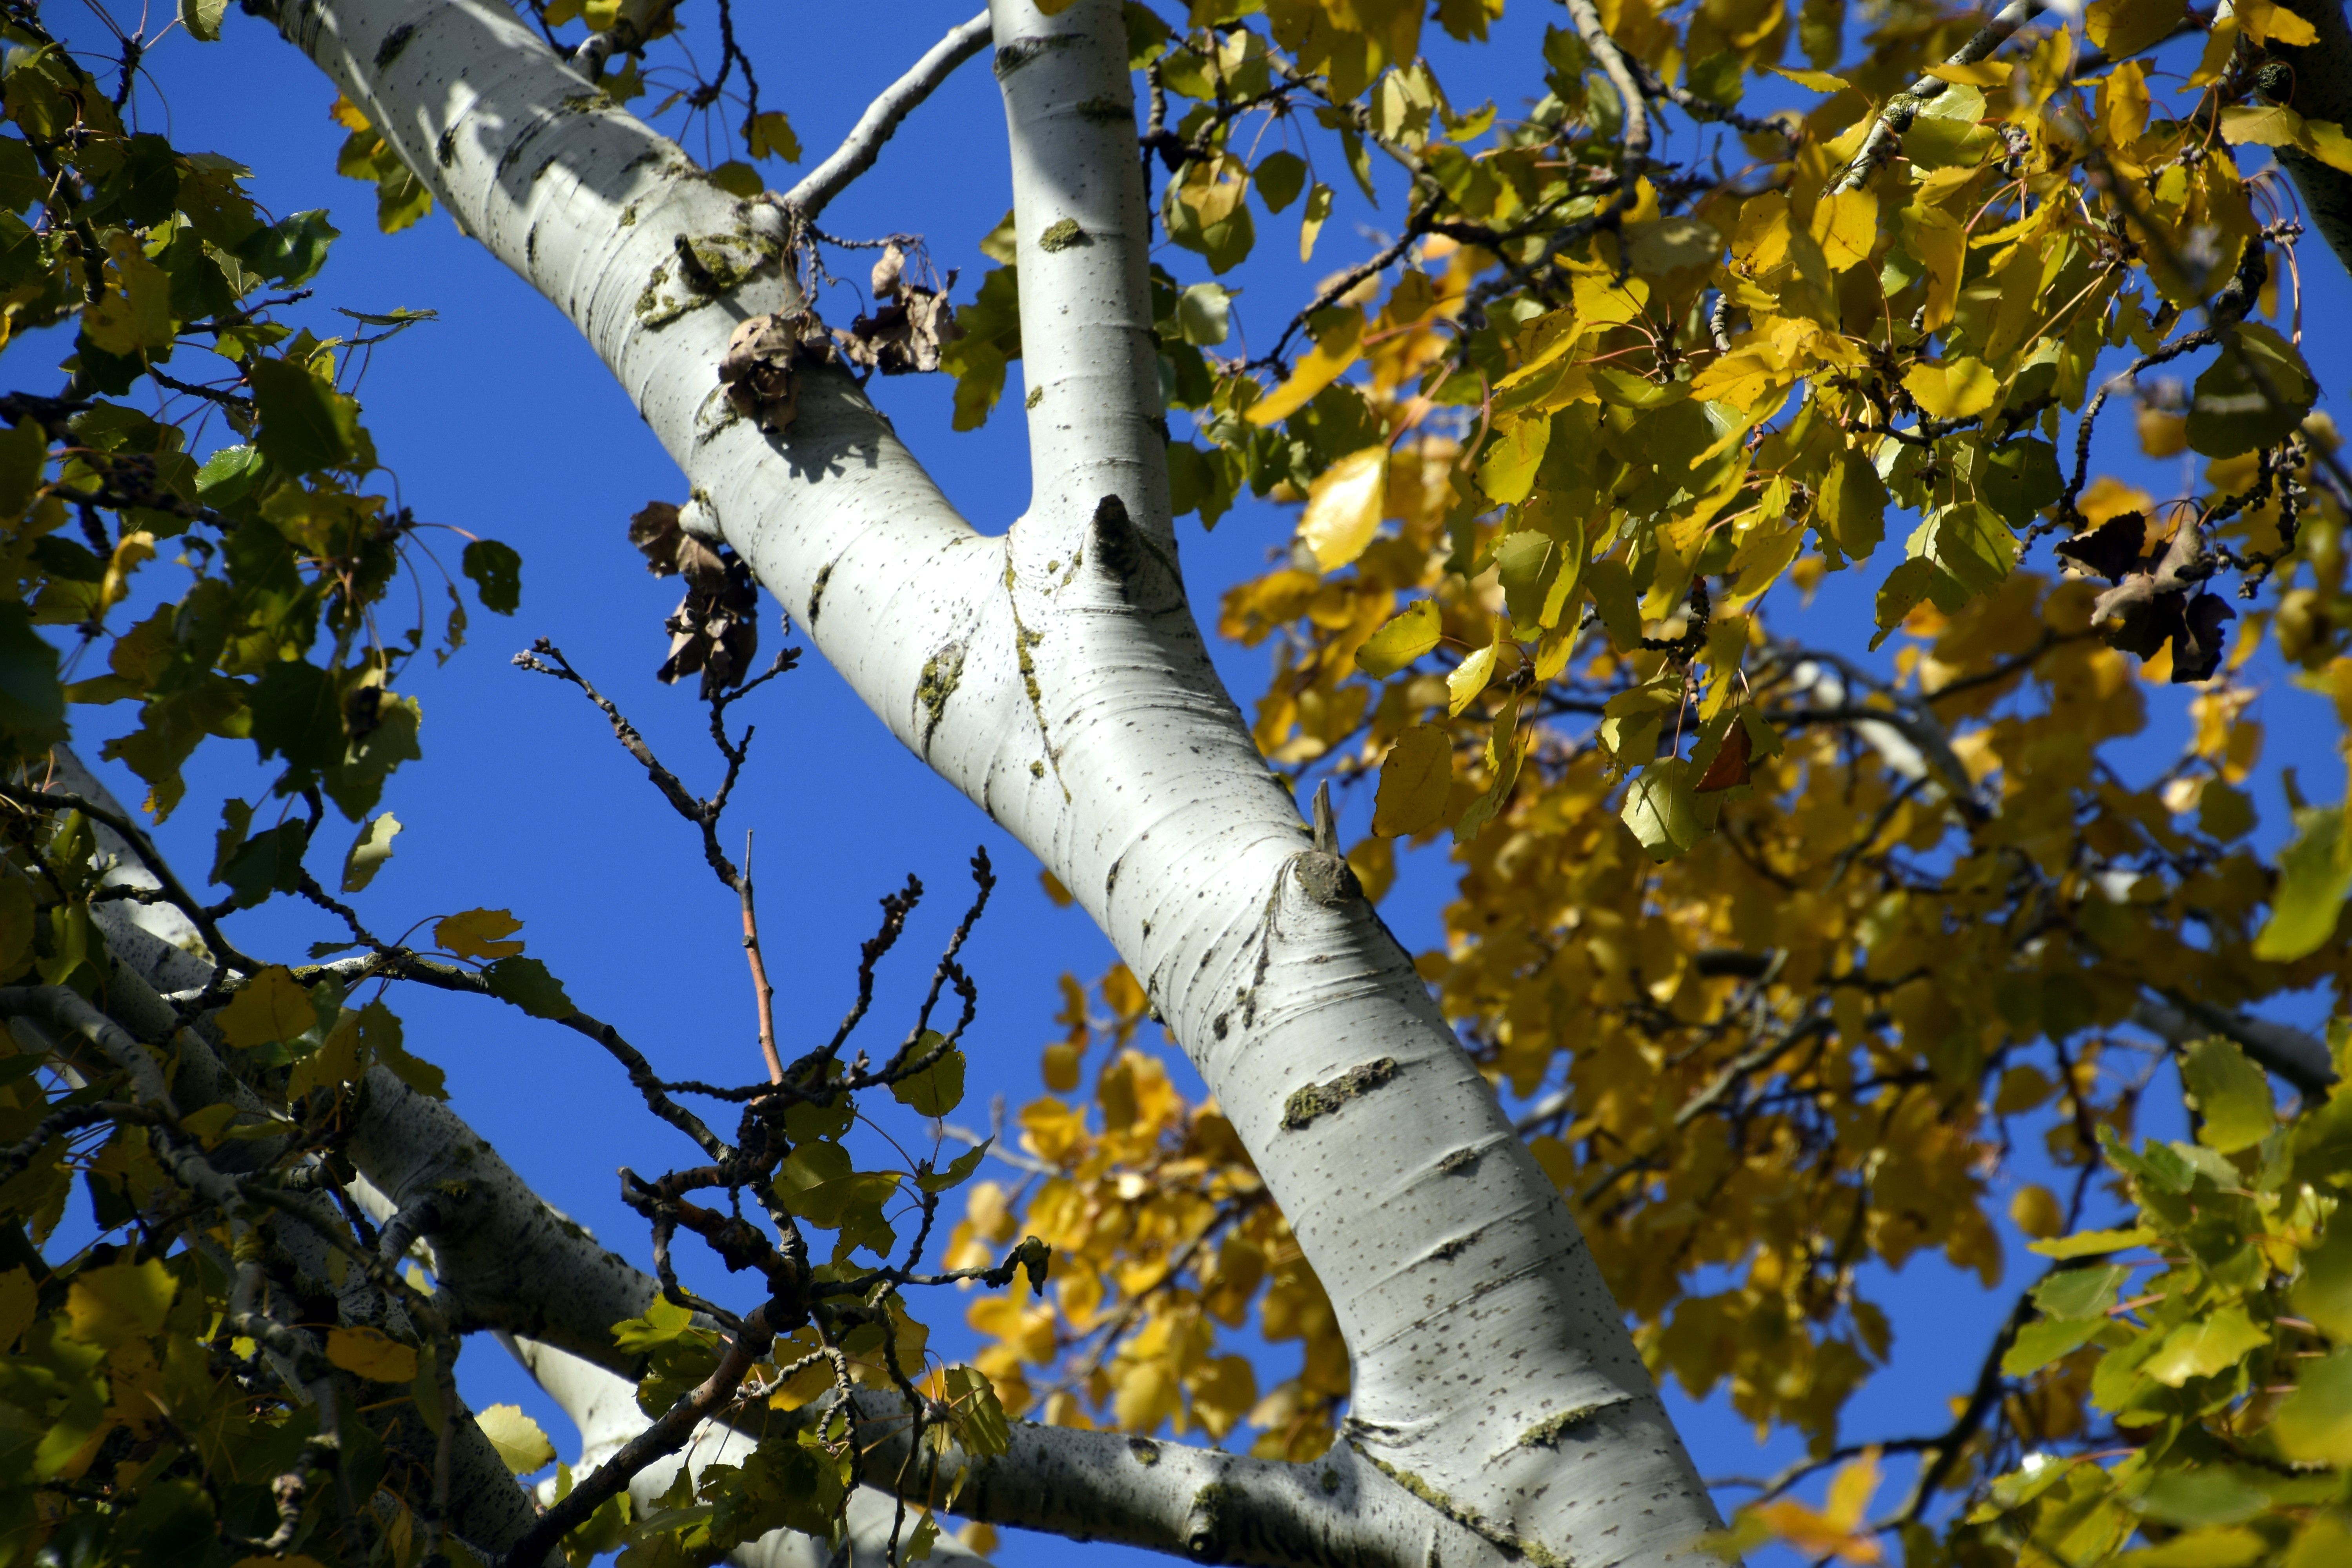 Silver poplar with yellow leaves in autumn against the blue sky